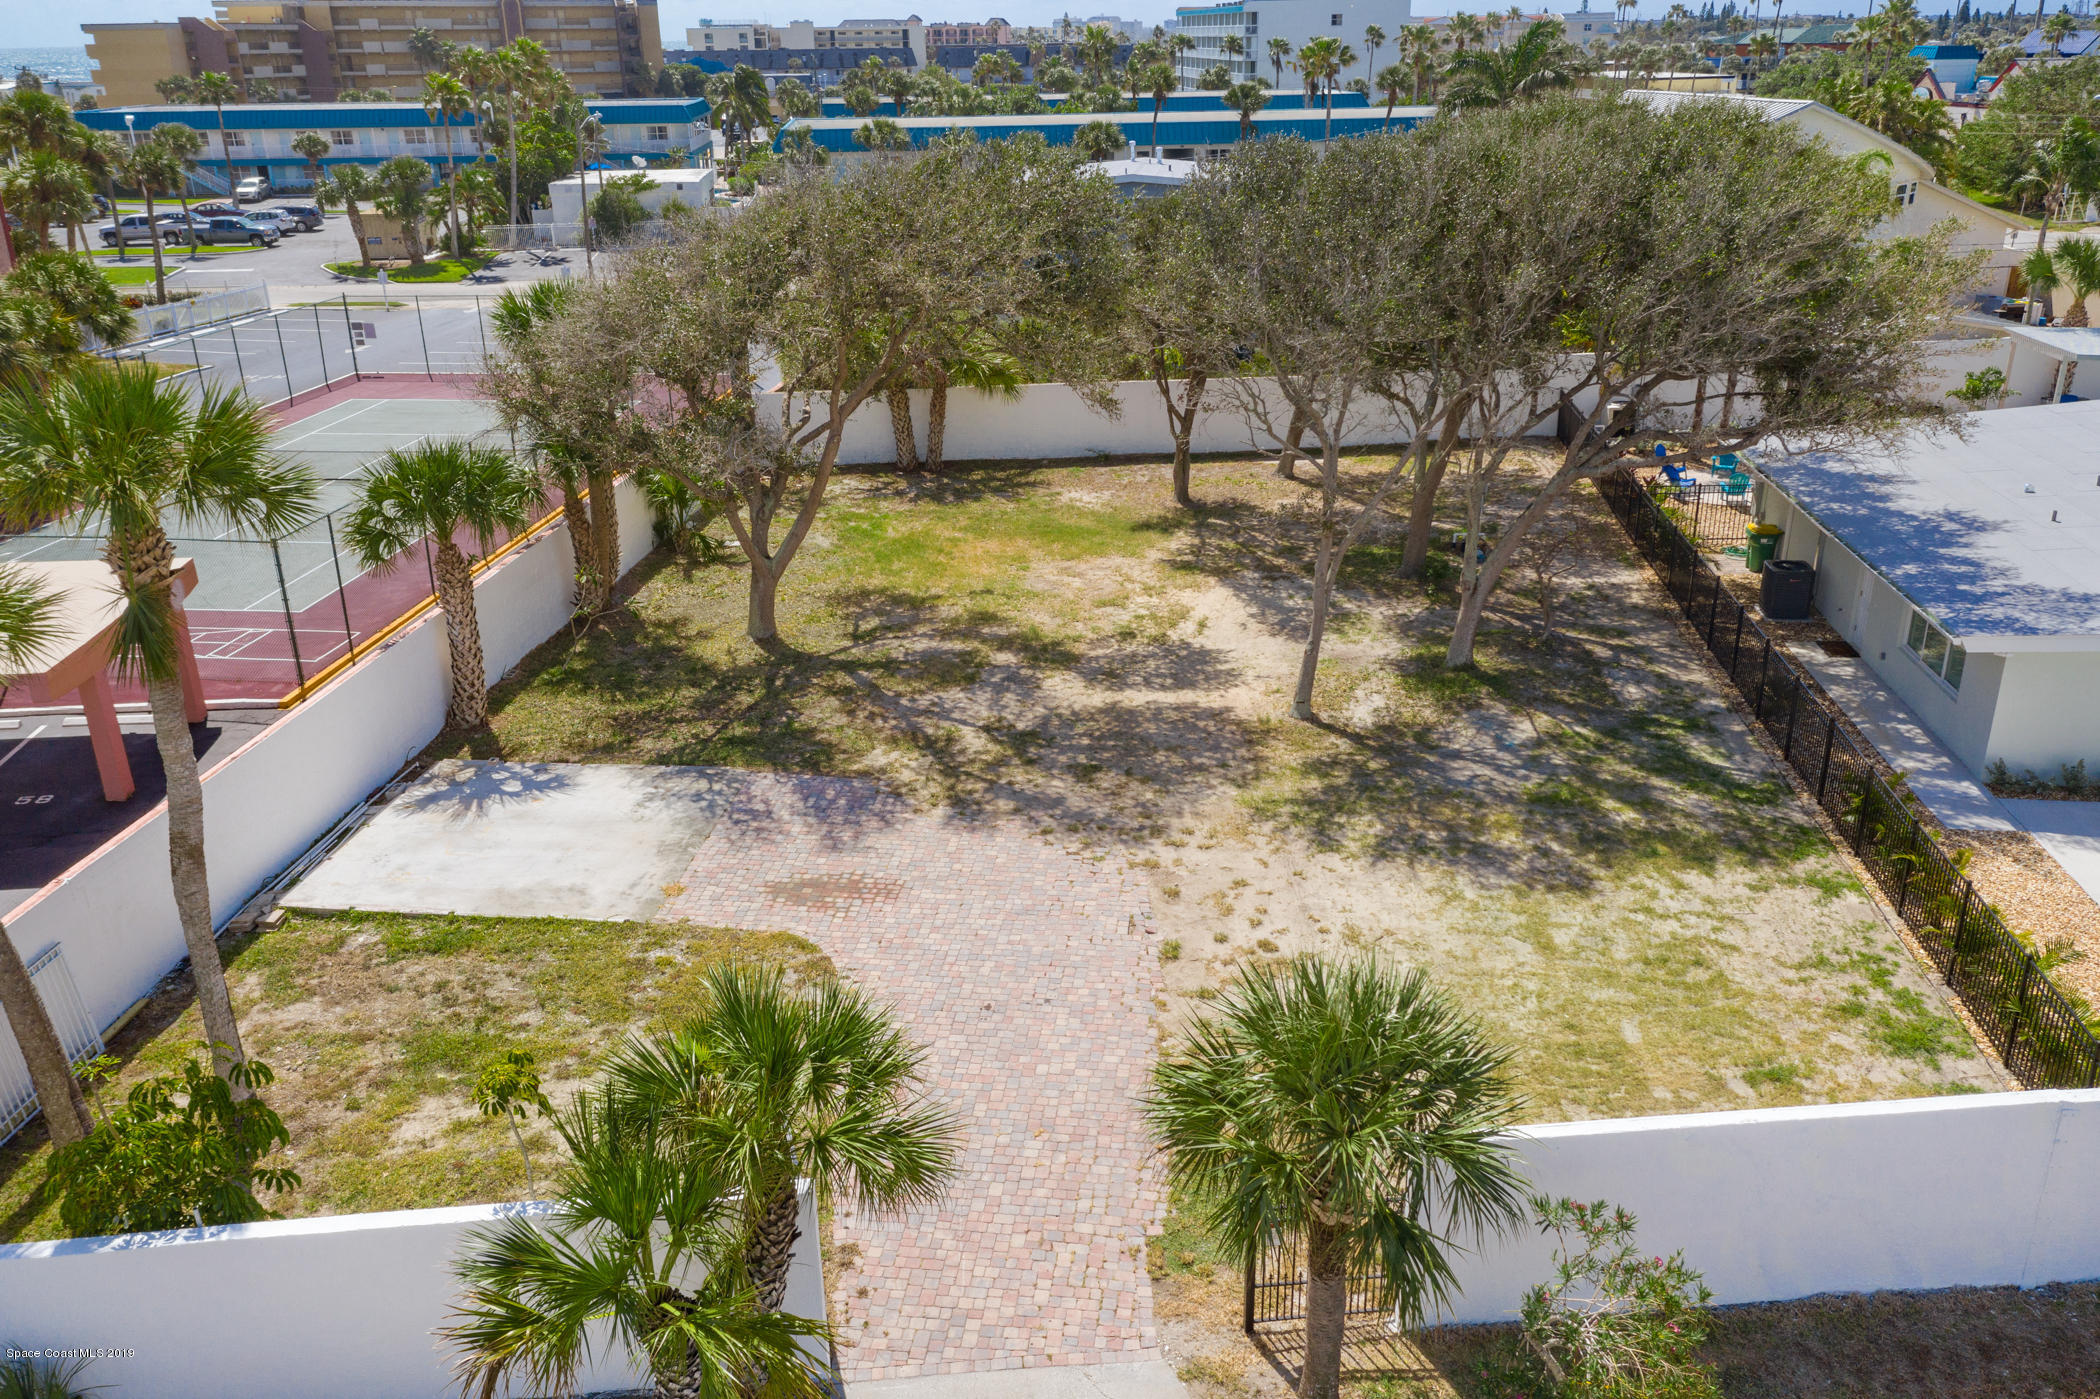 Land for Sale at 203 Barlow Cocoa Beach, Florida 32931 United States